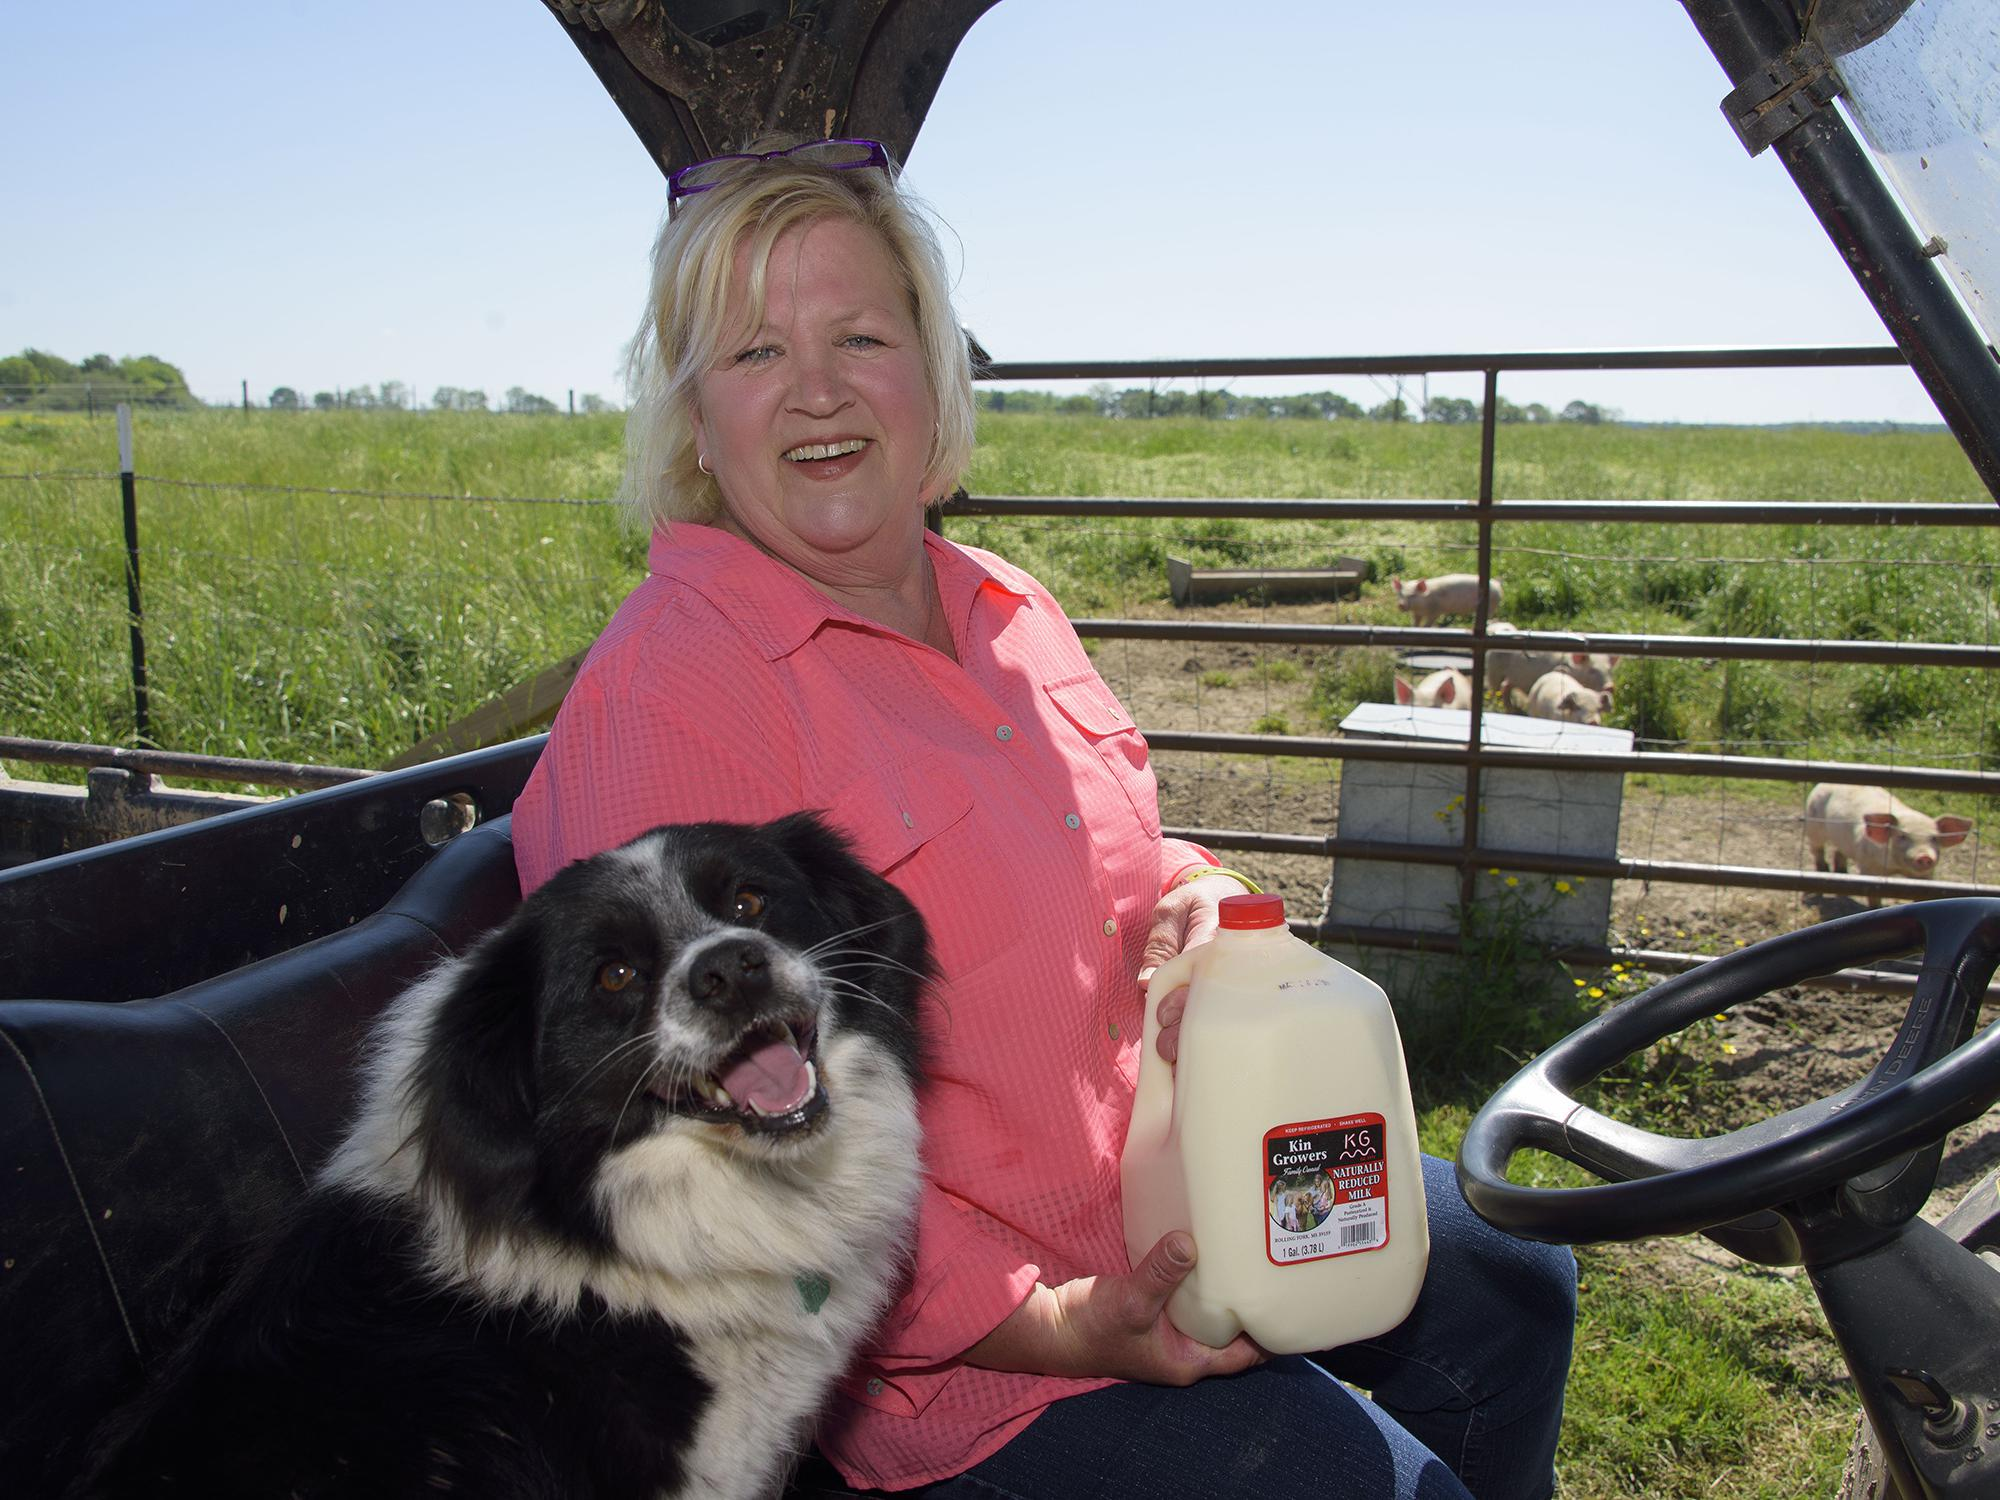 Mindy Rutherford and her family added a dairy to their Rolling Fork, Mississippi, farm this year. Milk produced by the farm's small dairy is processed on site. (Photo by MSU Extension Service/Kevin Hudson)